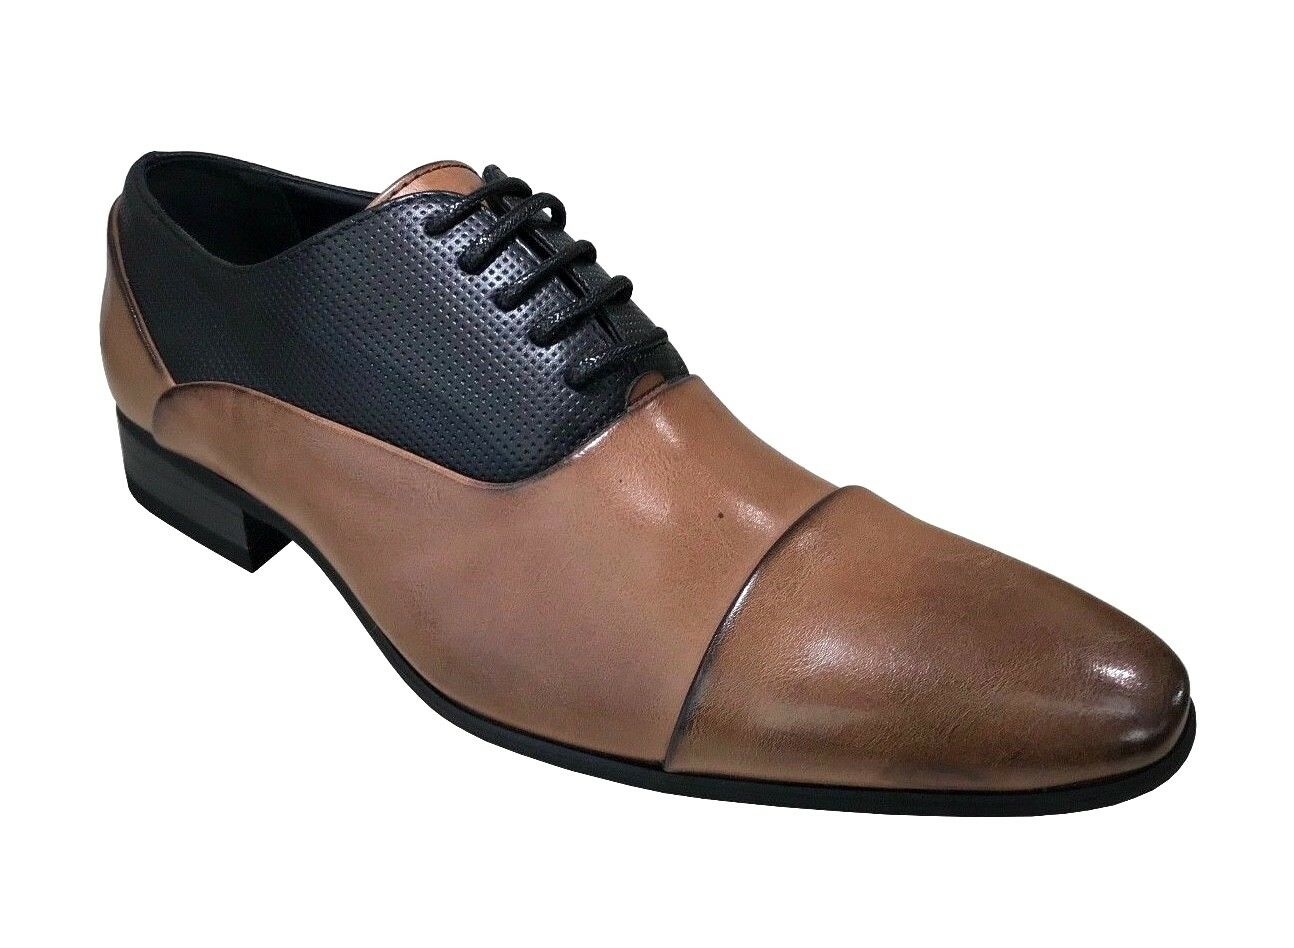 Taino BELLAMY Men's Oxfords Cap Toe Brown Black Dress shoes